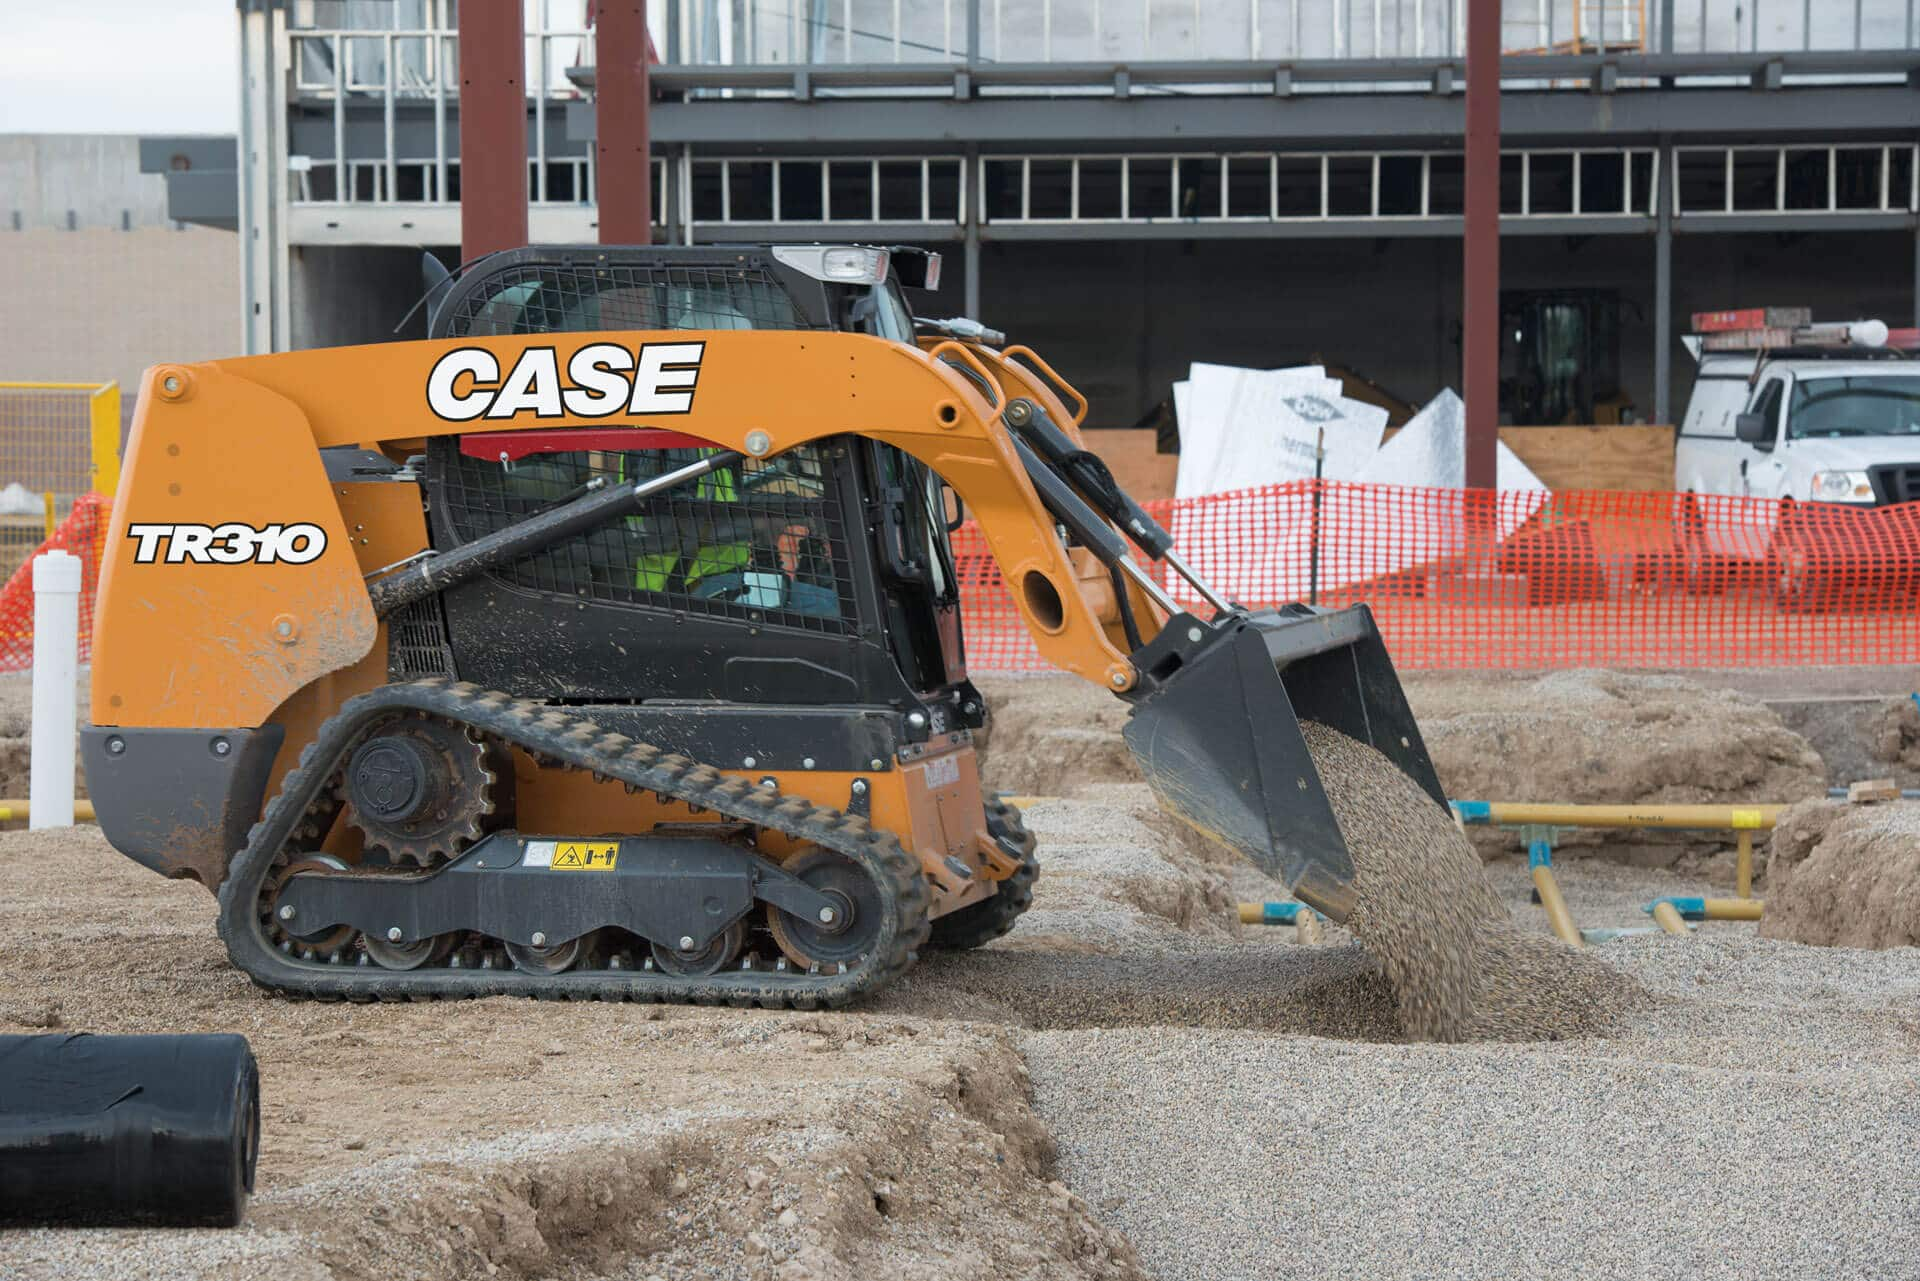 CASE TR310 Compact Track Loader | CASE Construction Equipment